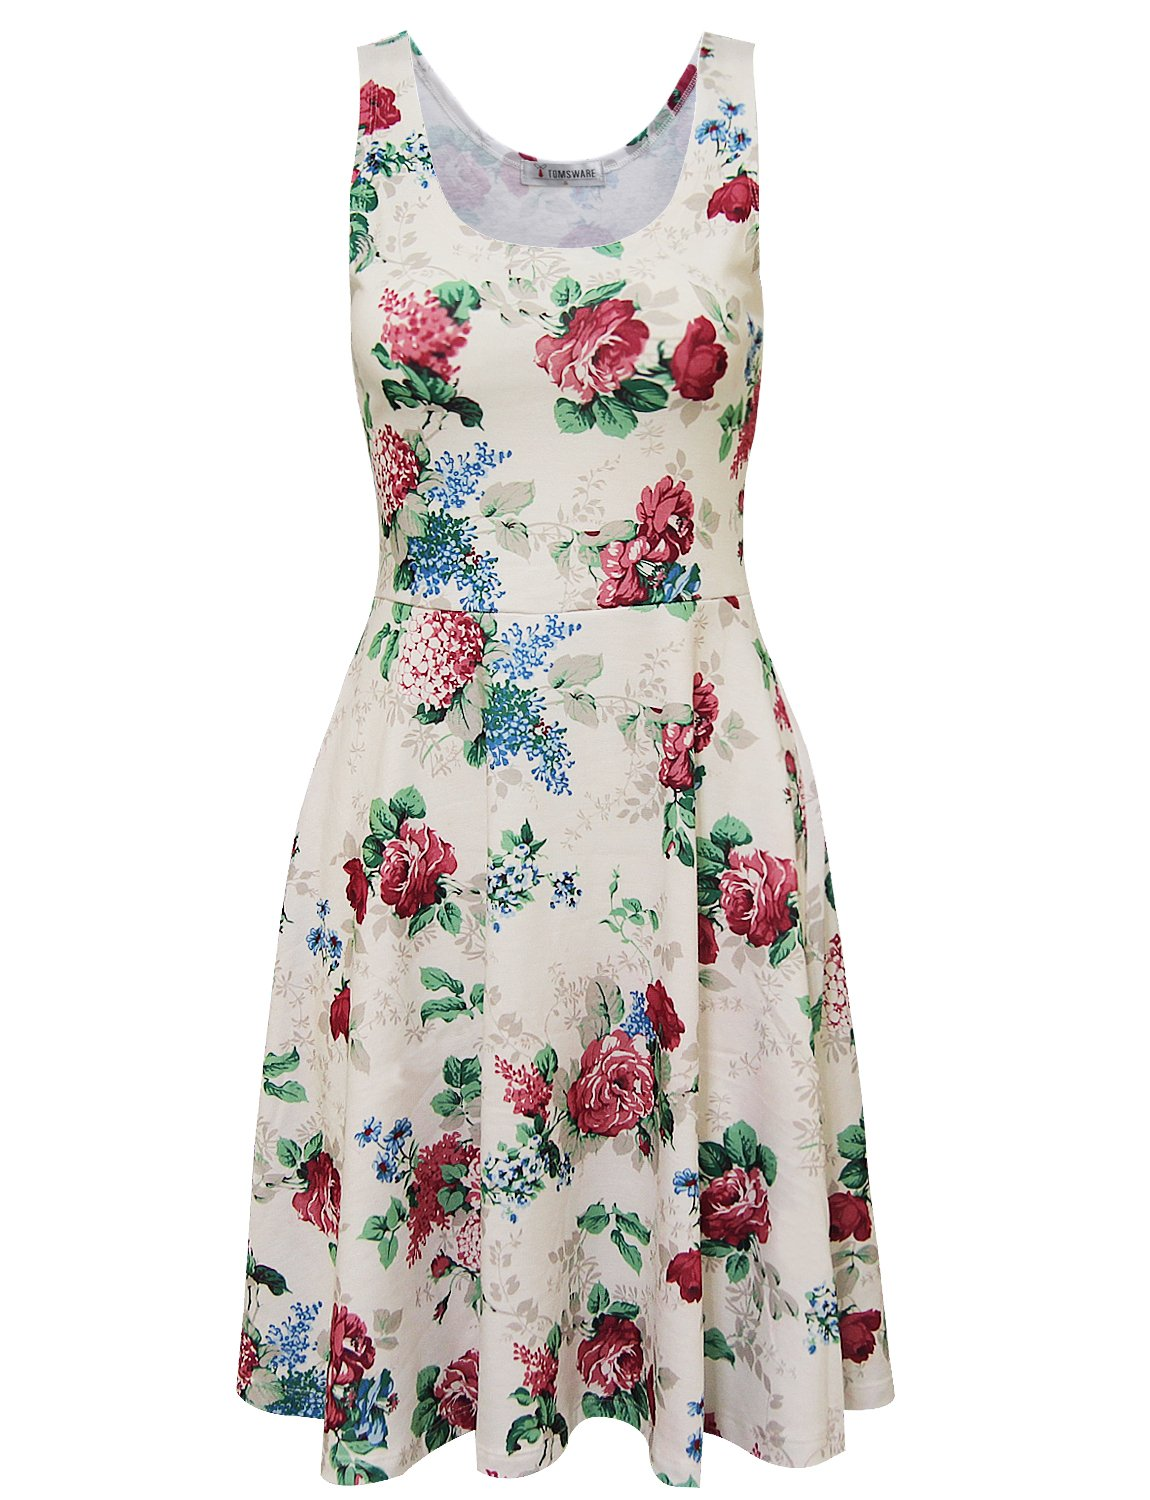 Tom's Ware Womens Casual Fit and Flare Floral Sleeveless Dress TWCWD054-WHITEWINE-US L